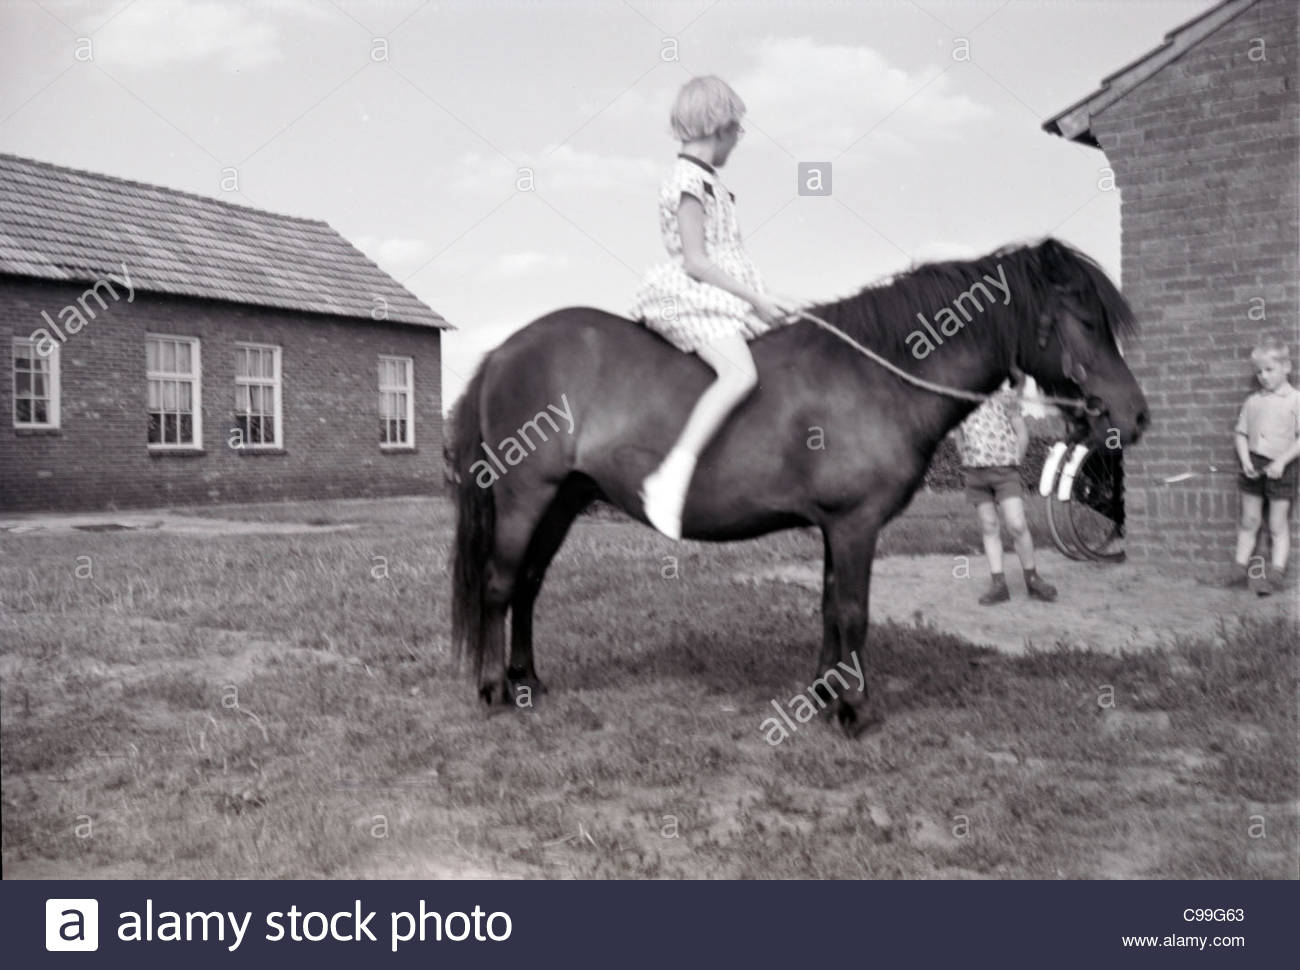 a young girl sitting on the back of a pony with other children looking on Holland - Stock Image